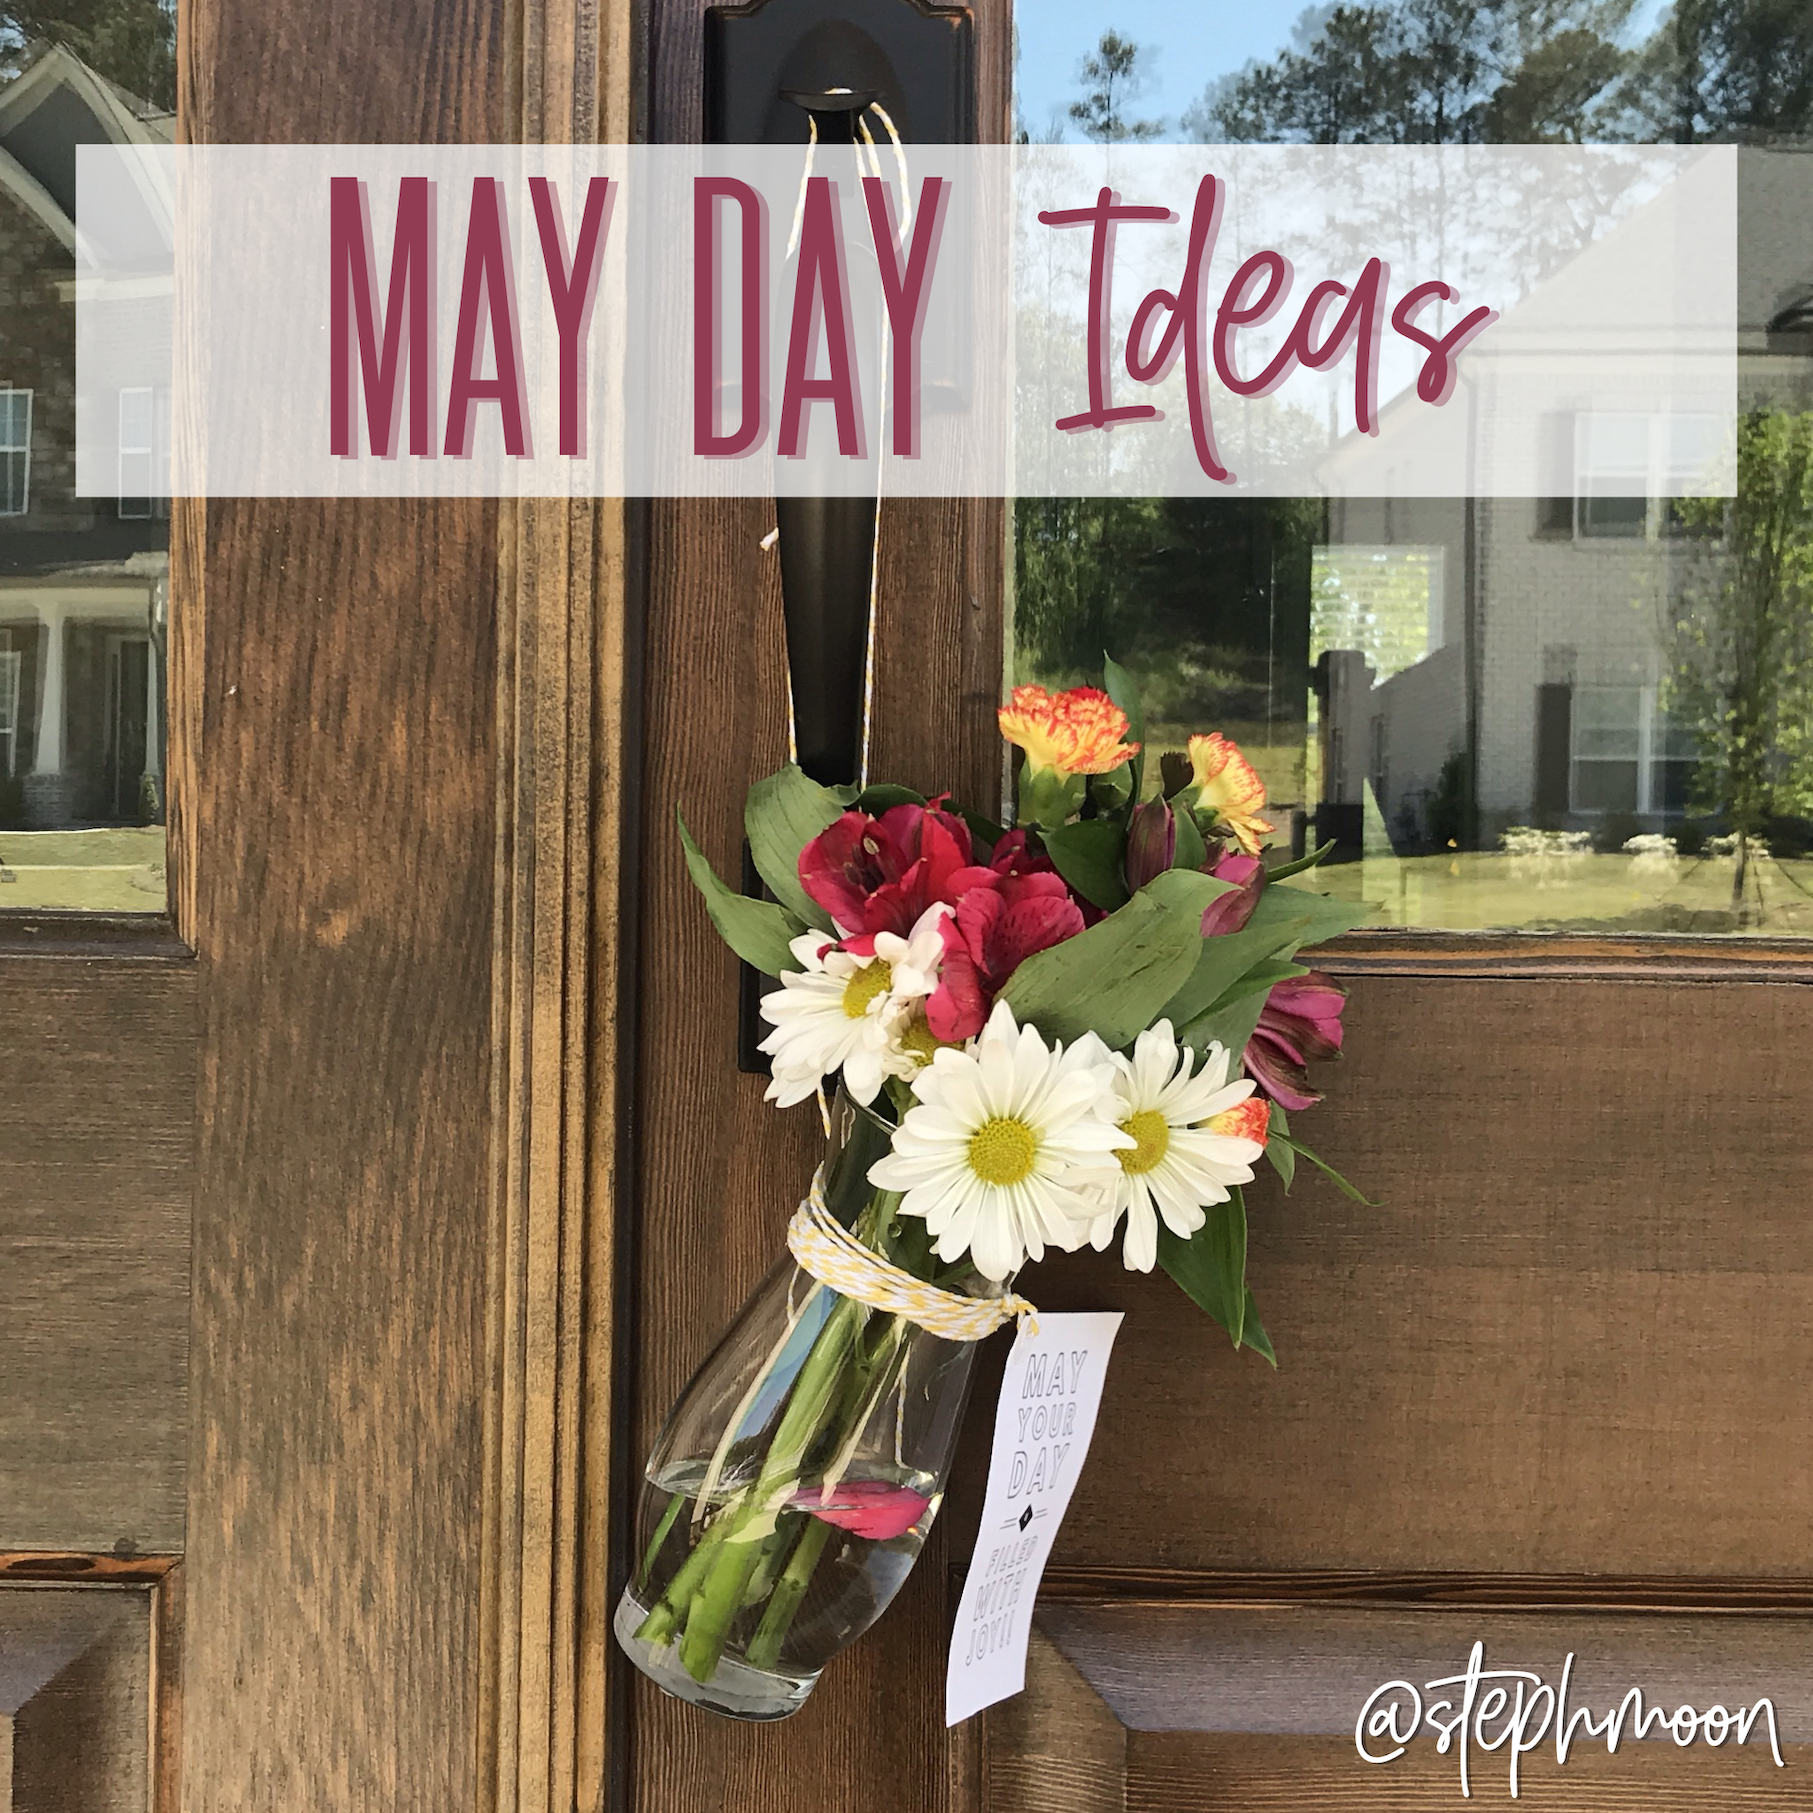 May Day Ideas 2019 with watermark.PNG